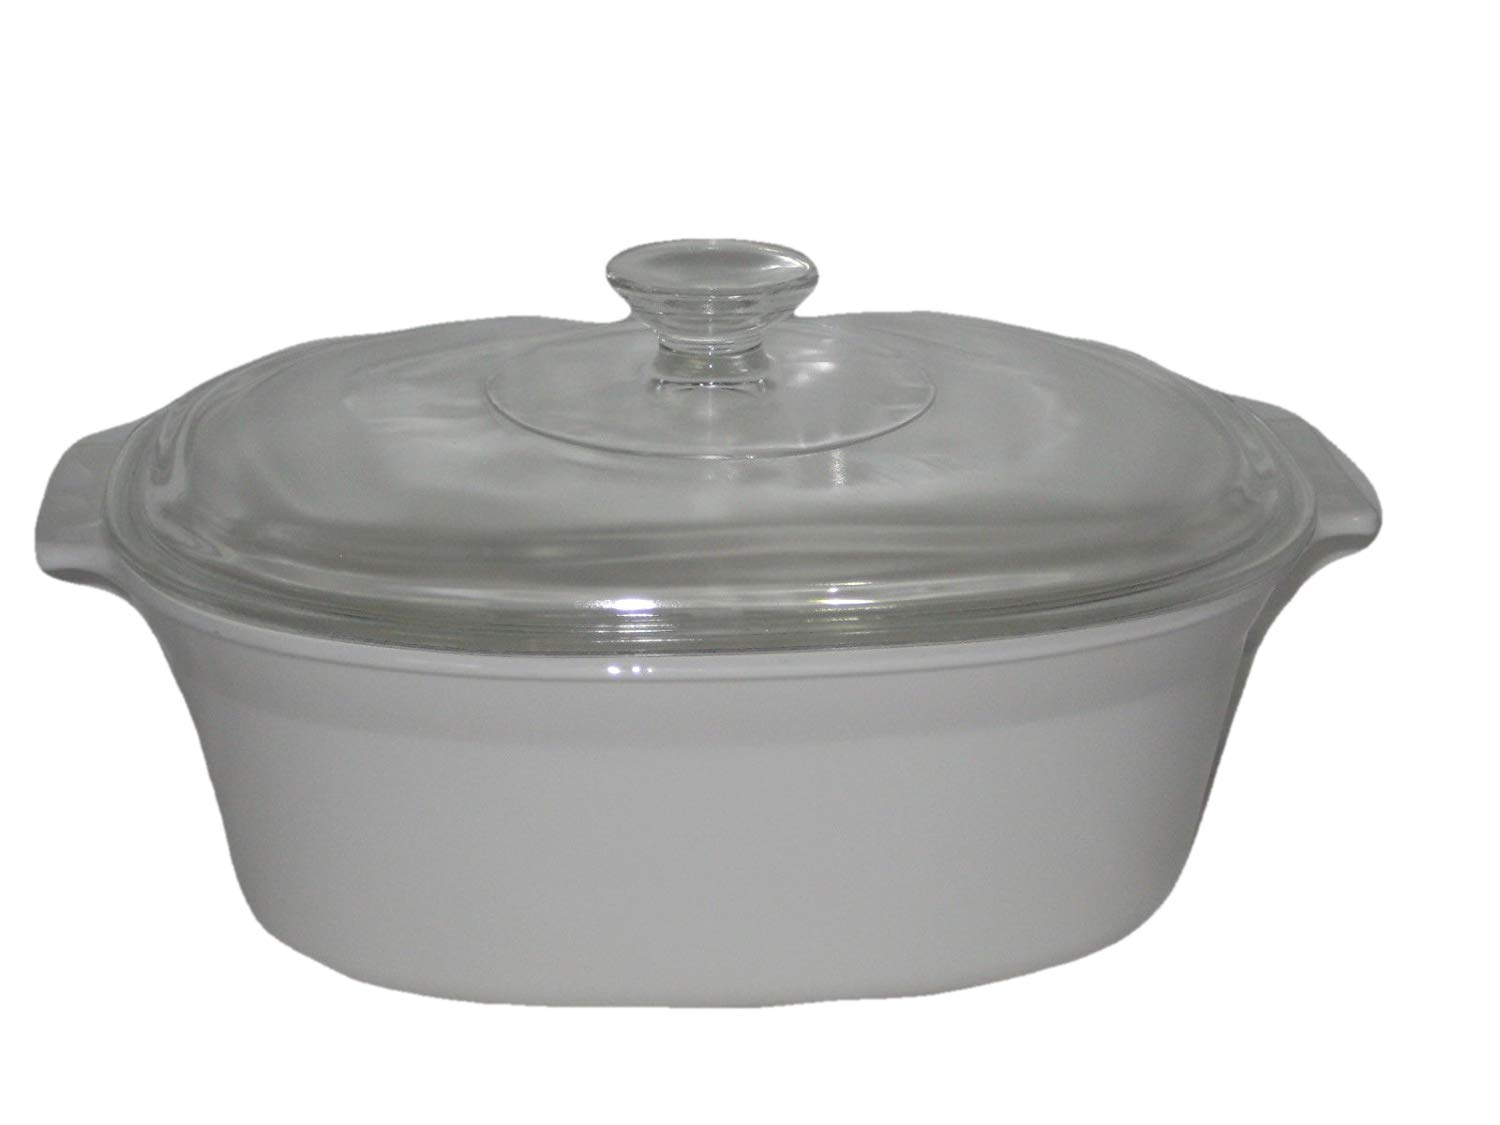 Vintage Corning White Oval 2 1/2 Quart Casserole Dutch Oven Baking Dish w/ Clear Lid USA